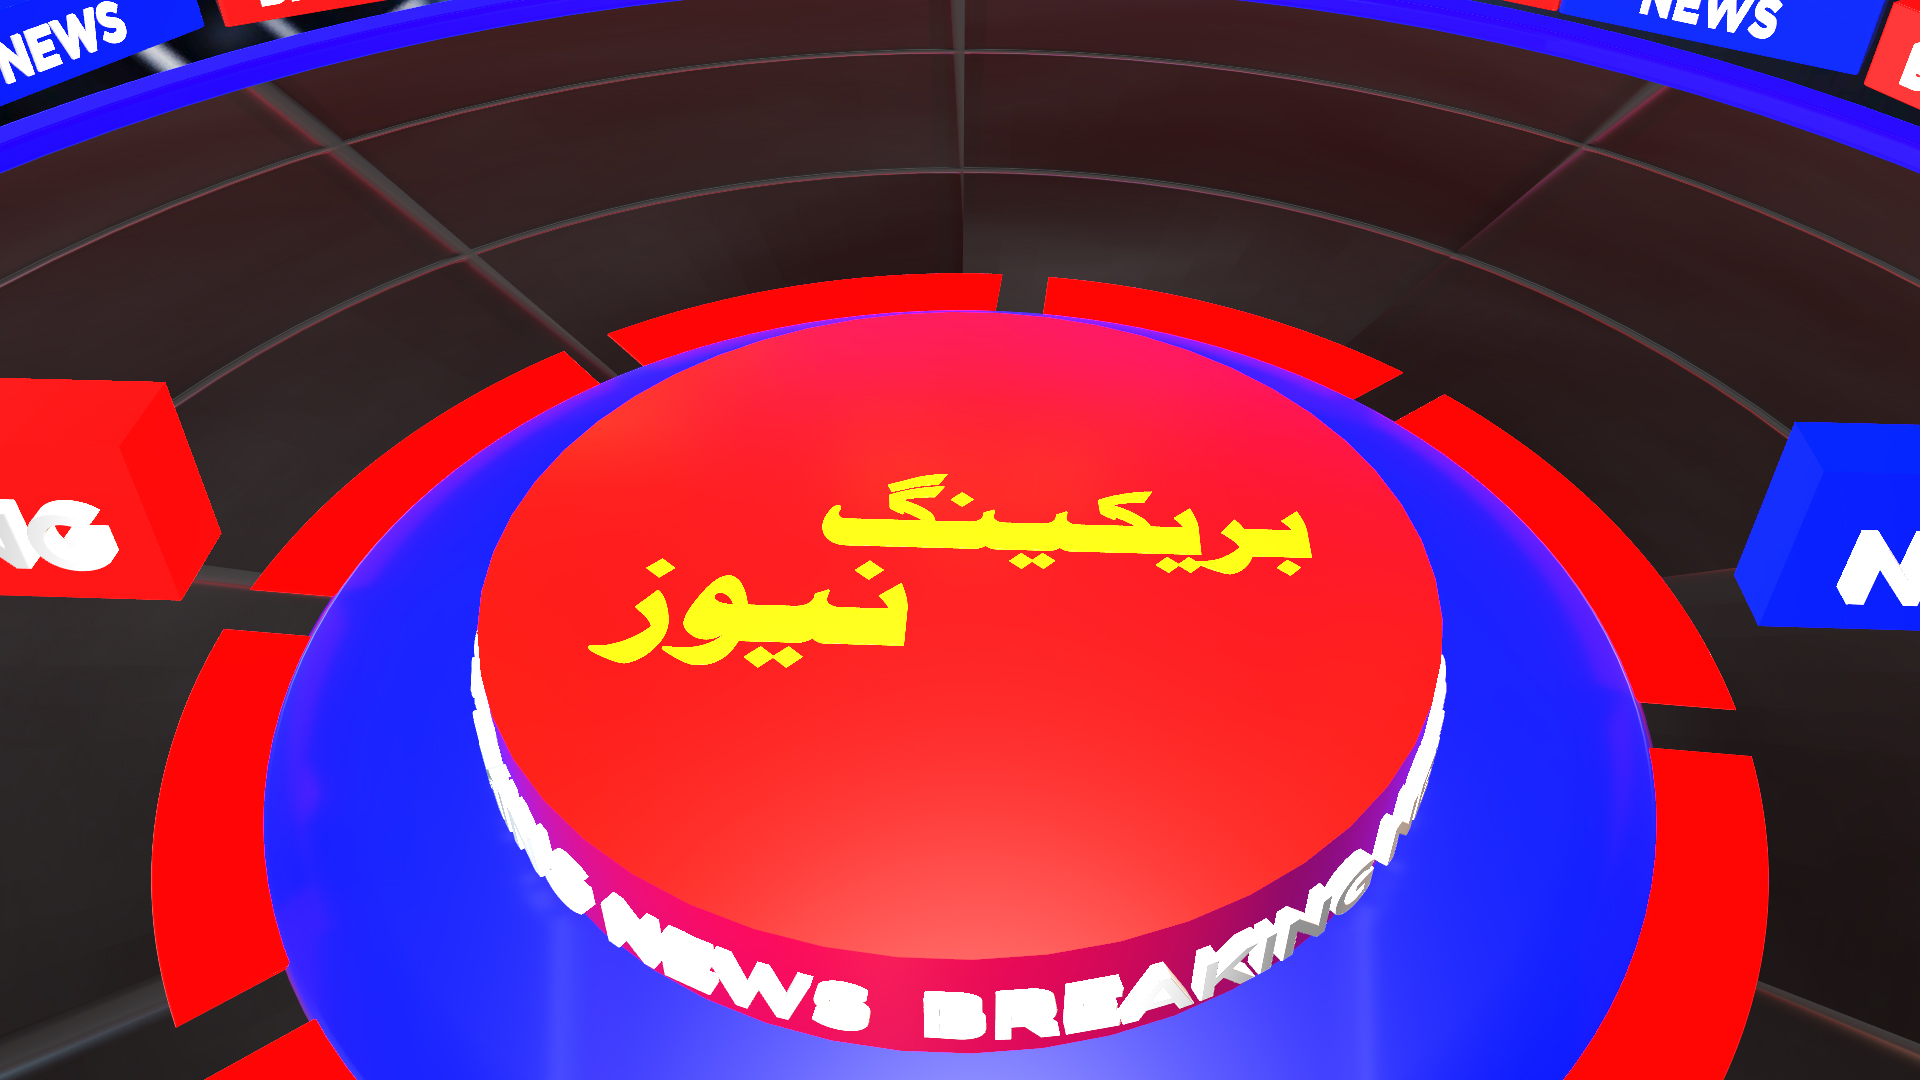 Breaking news urdu